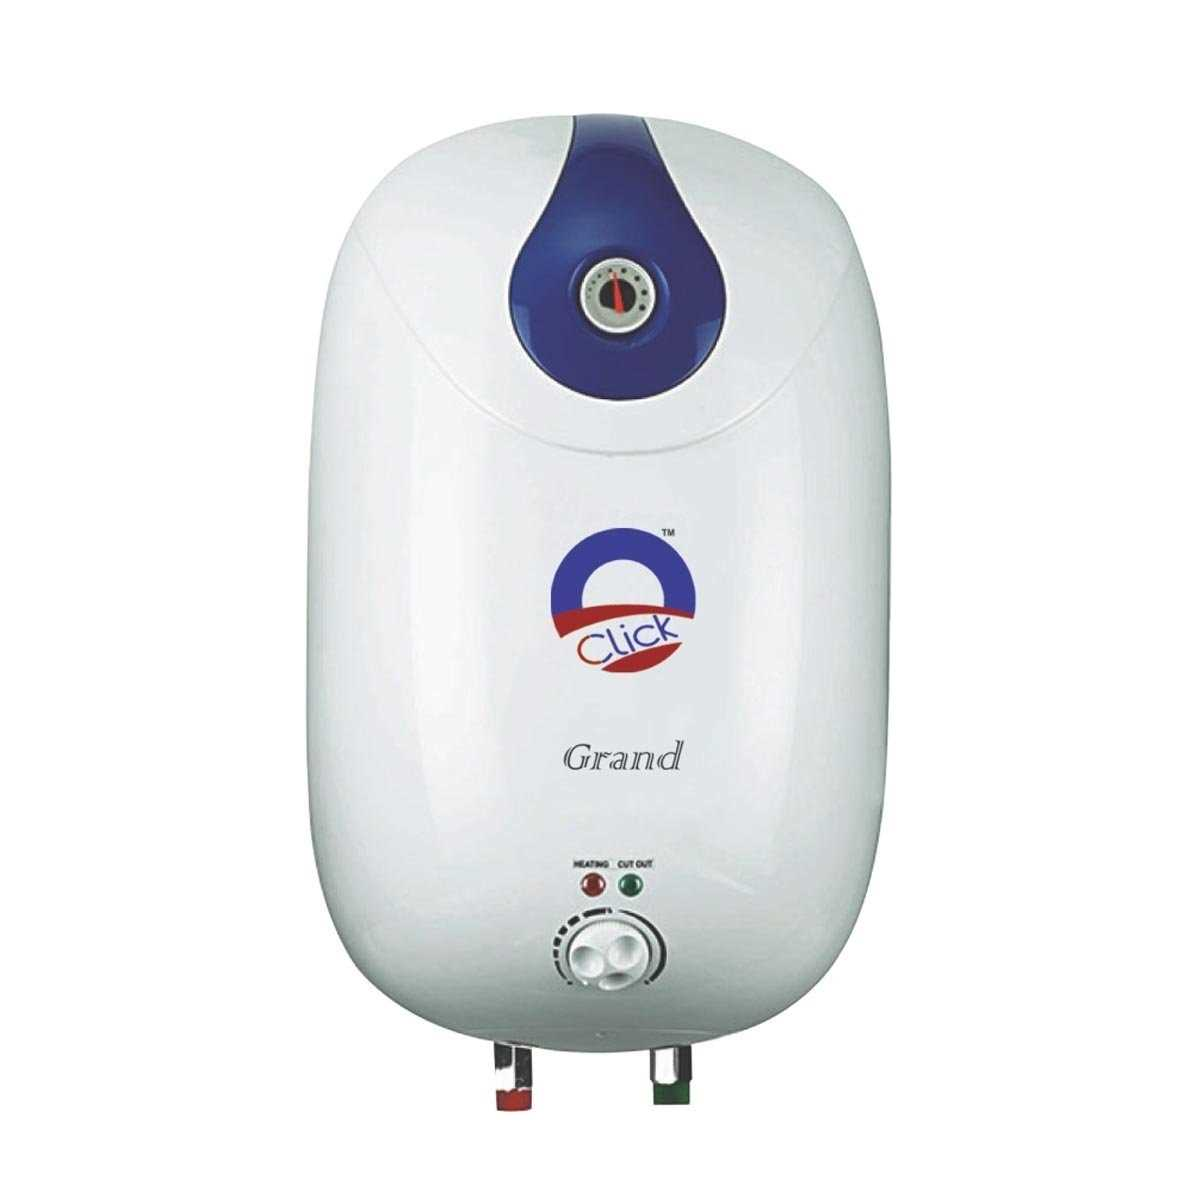 Click Grand 10 Litre Water Geyser